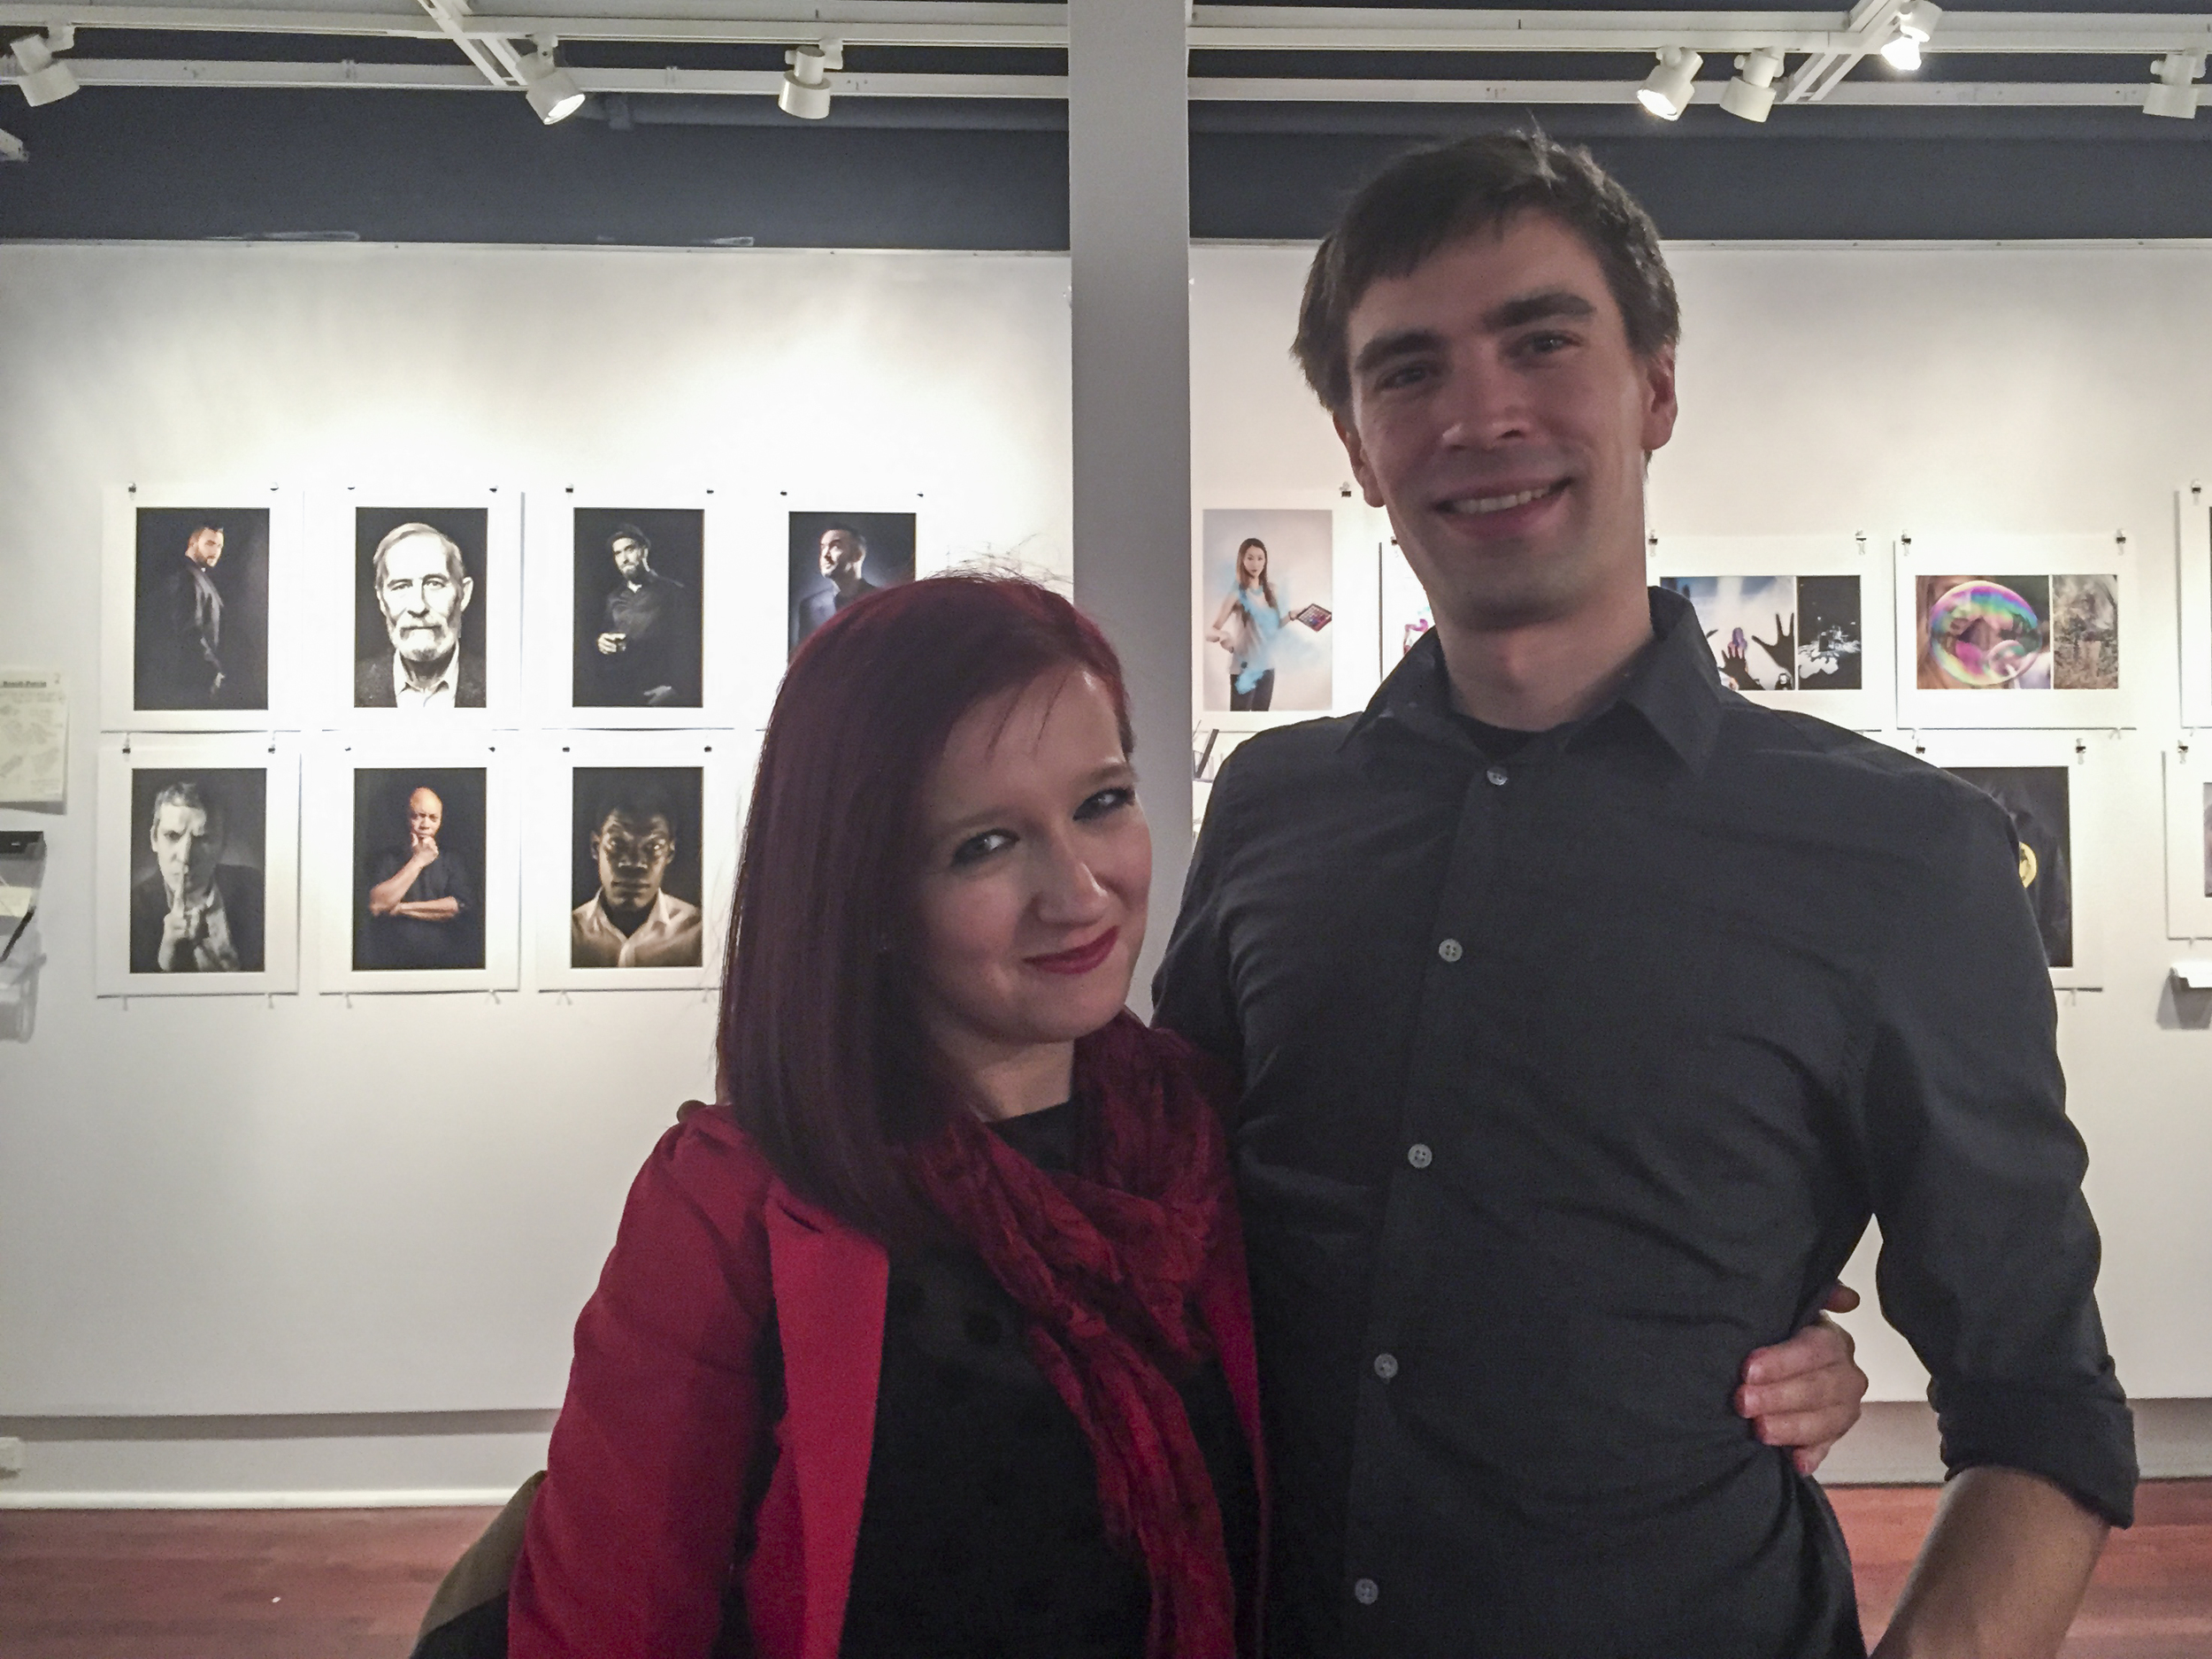 Me & Olivier at our graduation vernissage